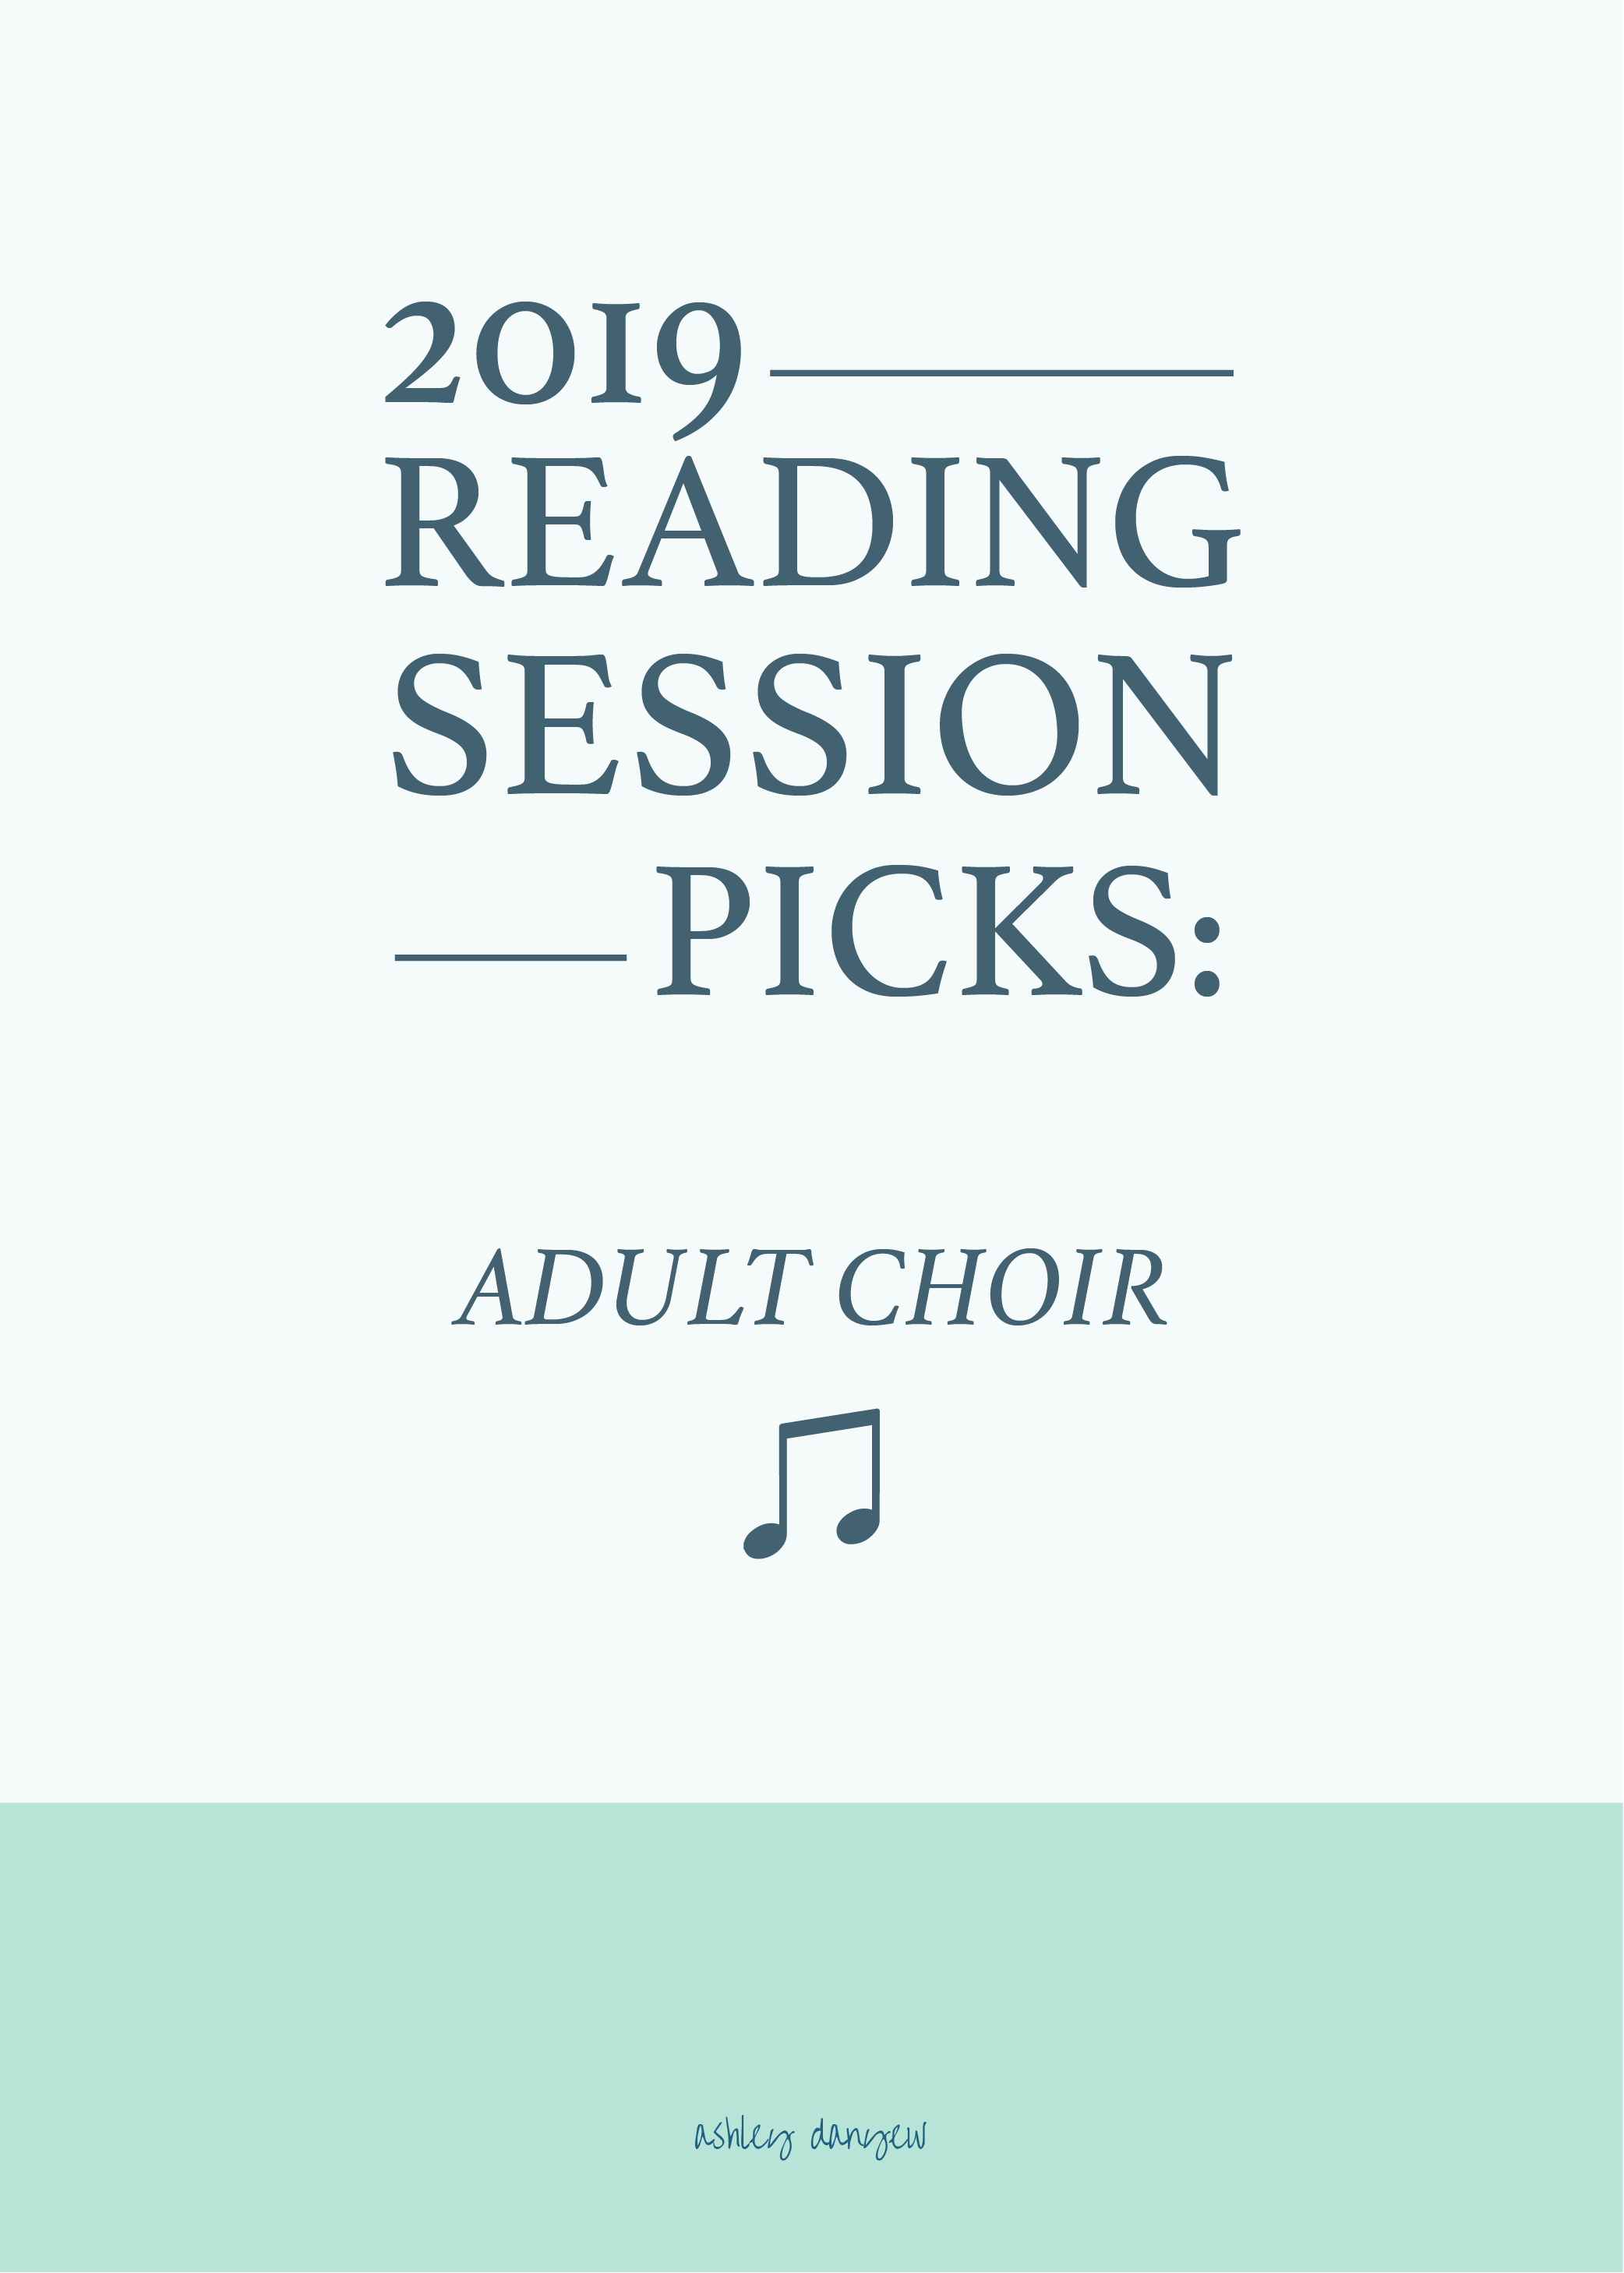 2019 Reading Session Picks - Adult Choir-33.png